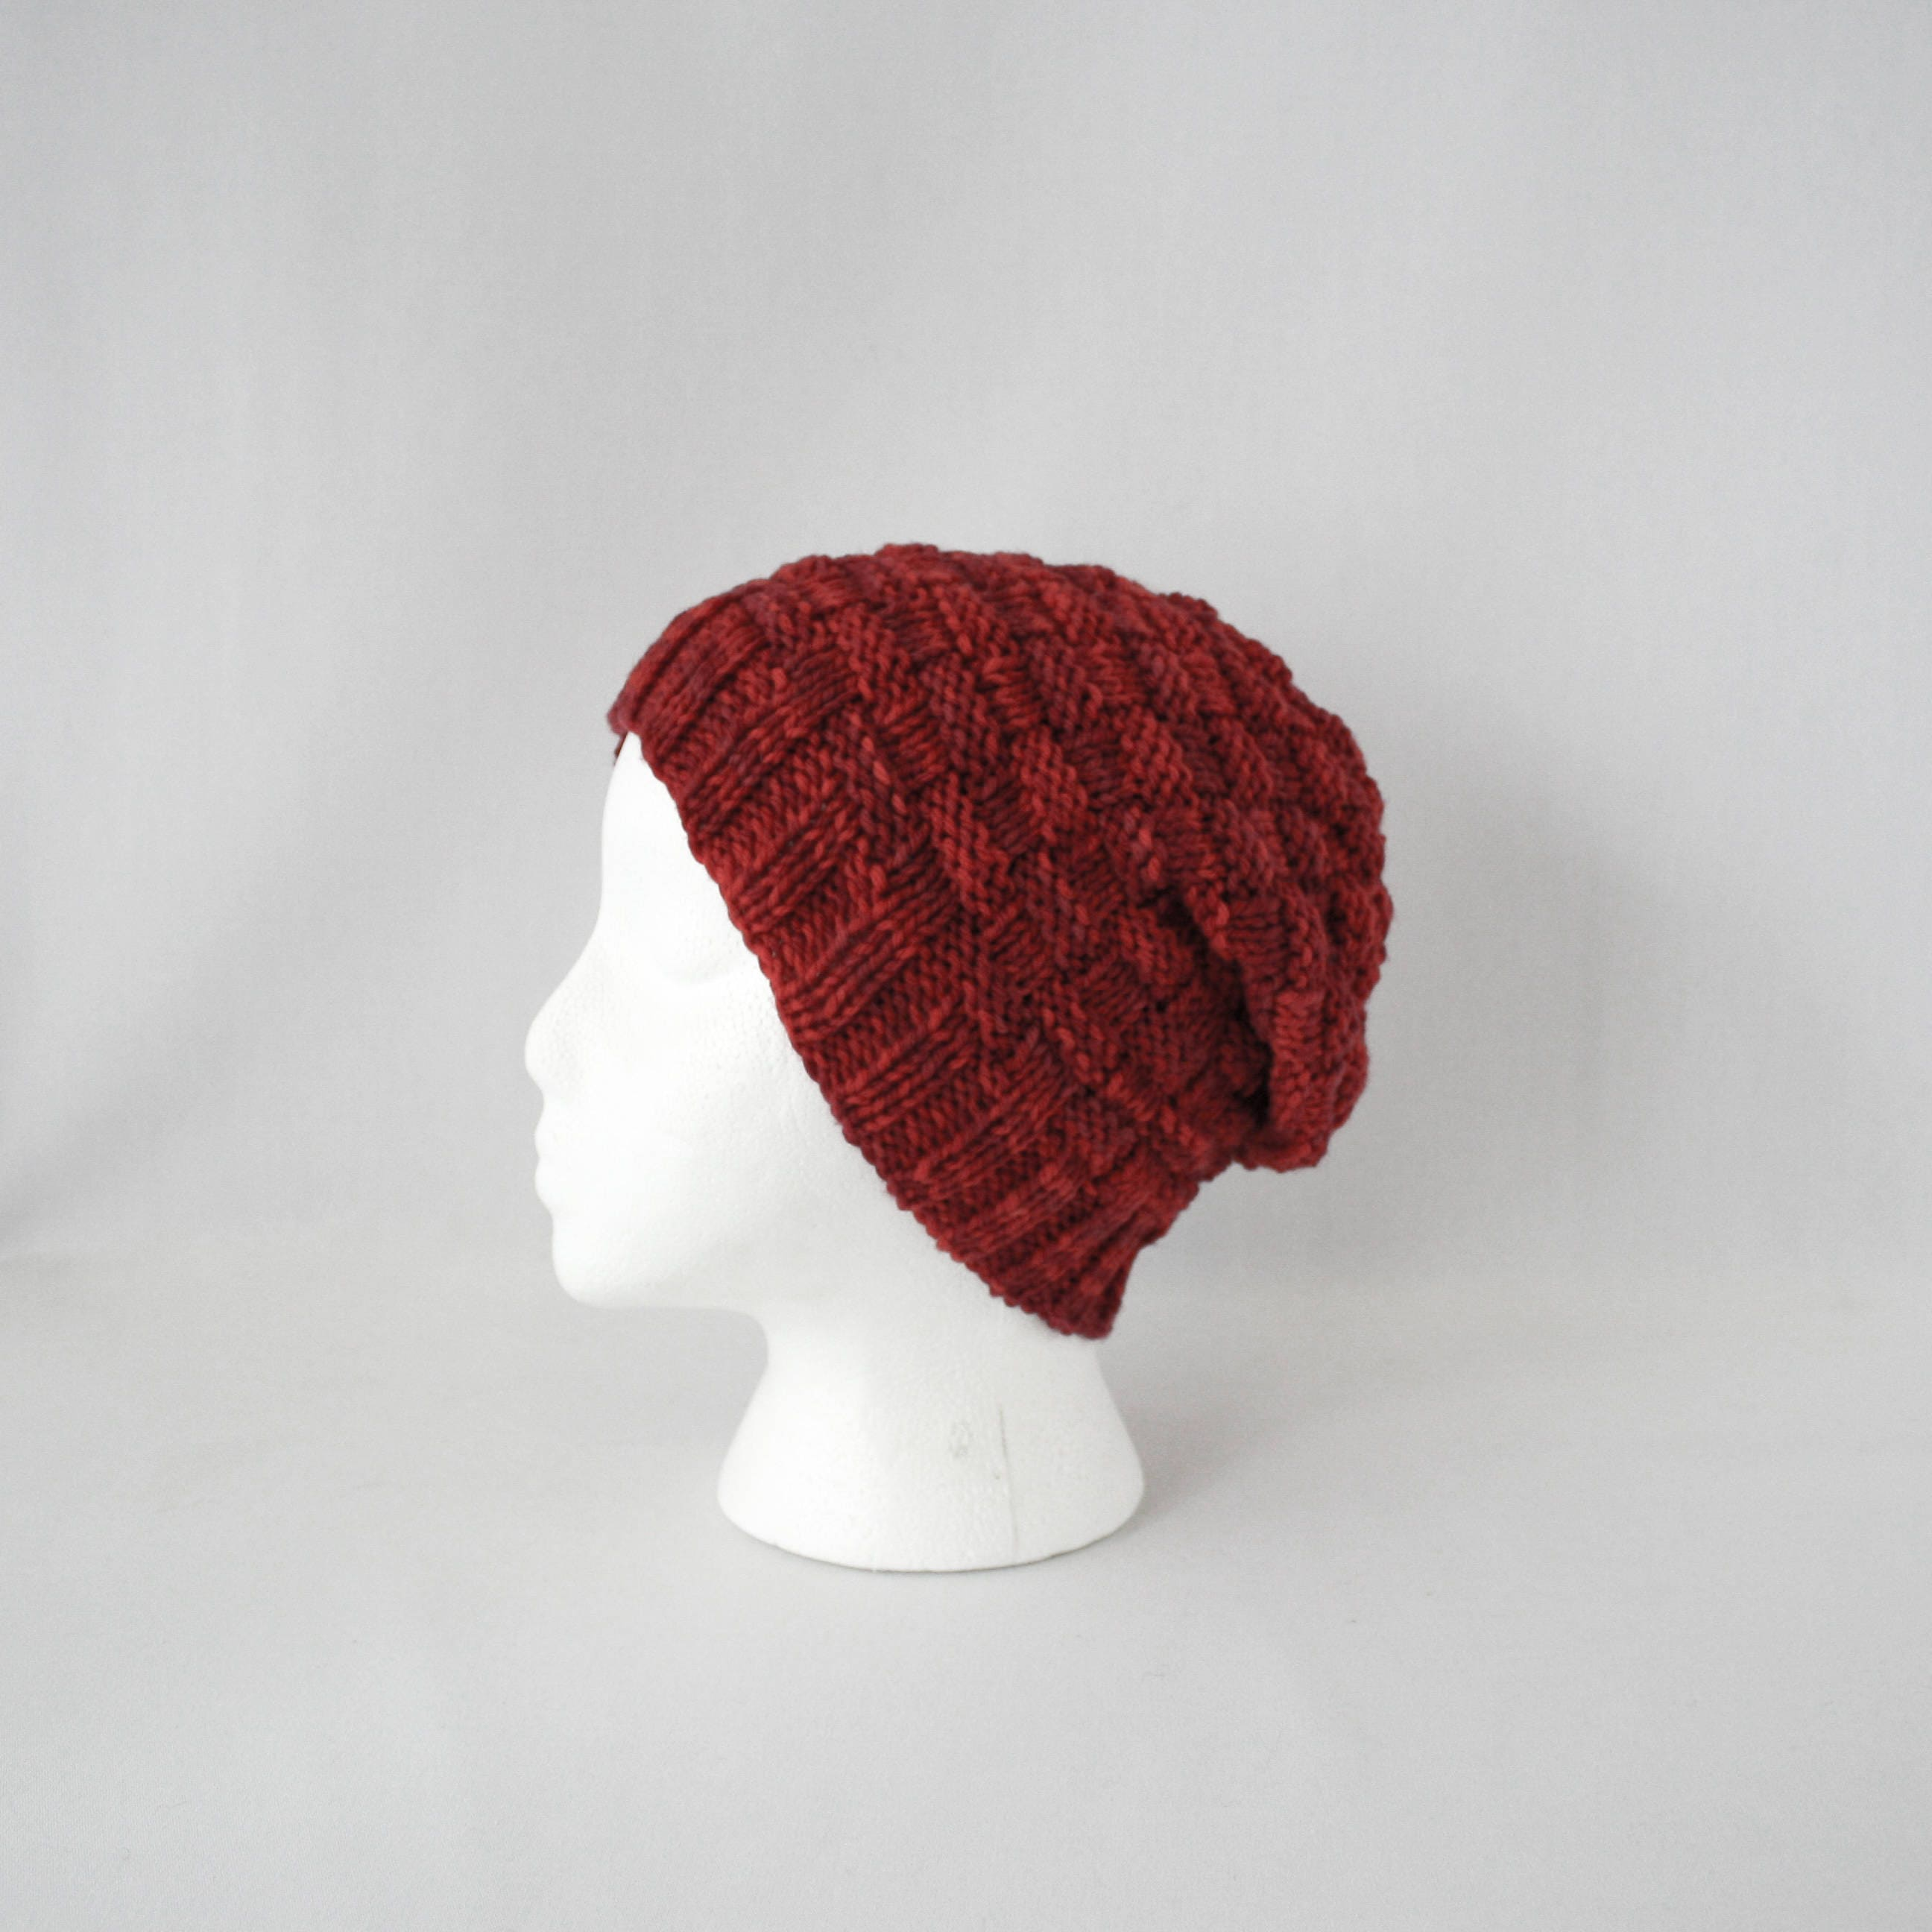 Hive hat knitting pattern worsted slouchy basketweave cap knit this is a digital file bankloansurffo Choice Image